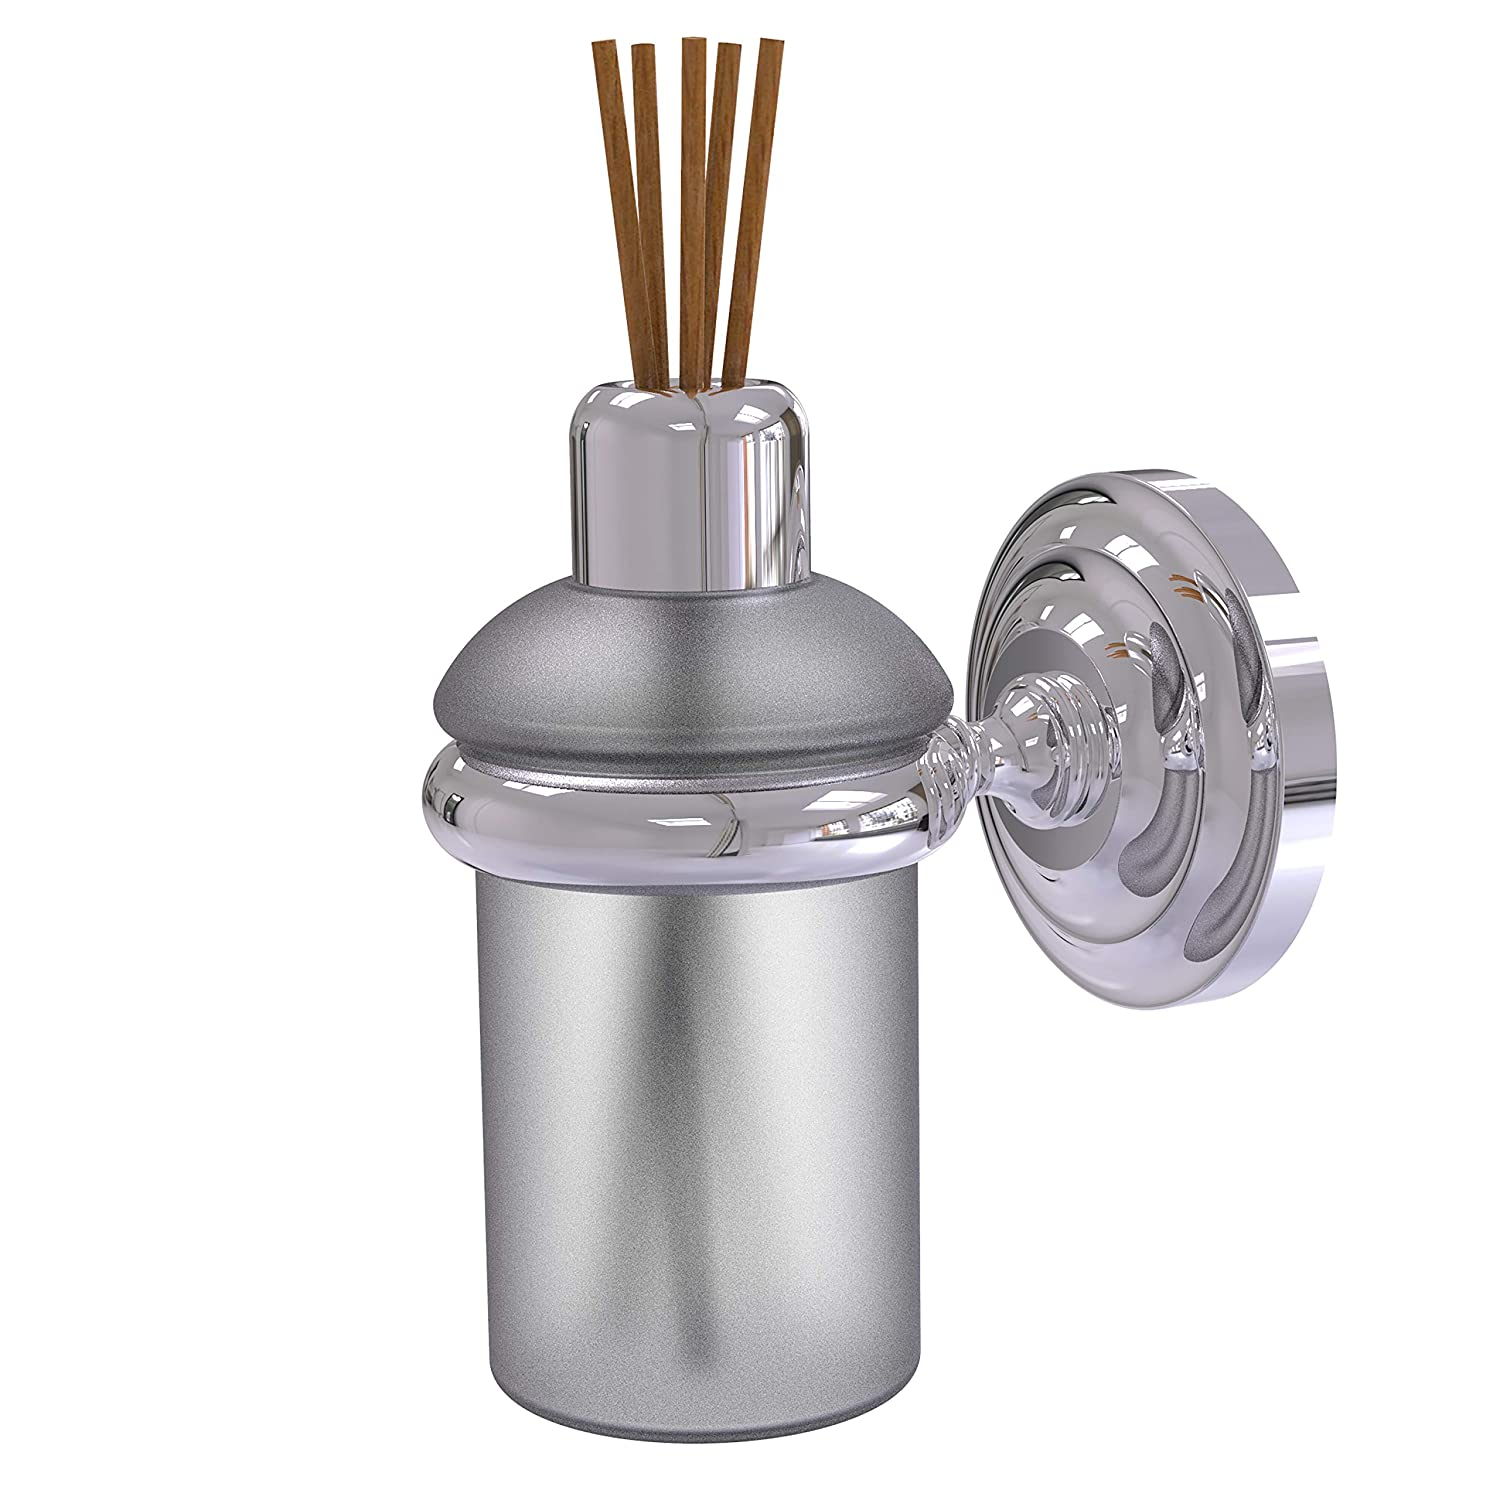 Allied Brass Que Wall Mounted Reed Fragrance Oil Diffuser, 5 Ounce Capacity, Polished Chrome